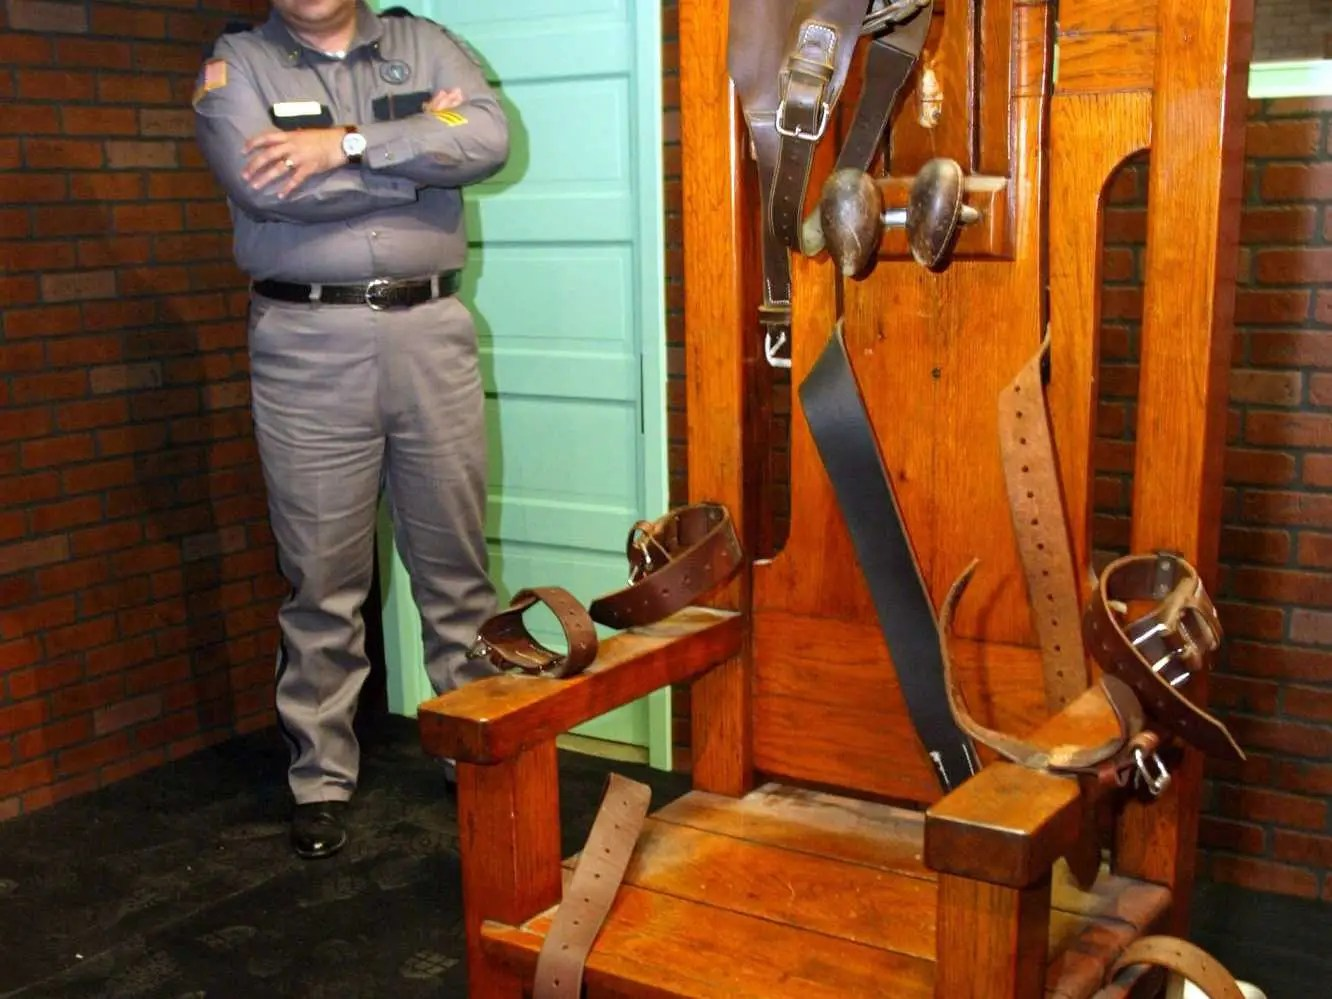 florida electric chair who reupholstered chairs images usseek